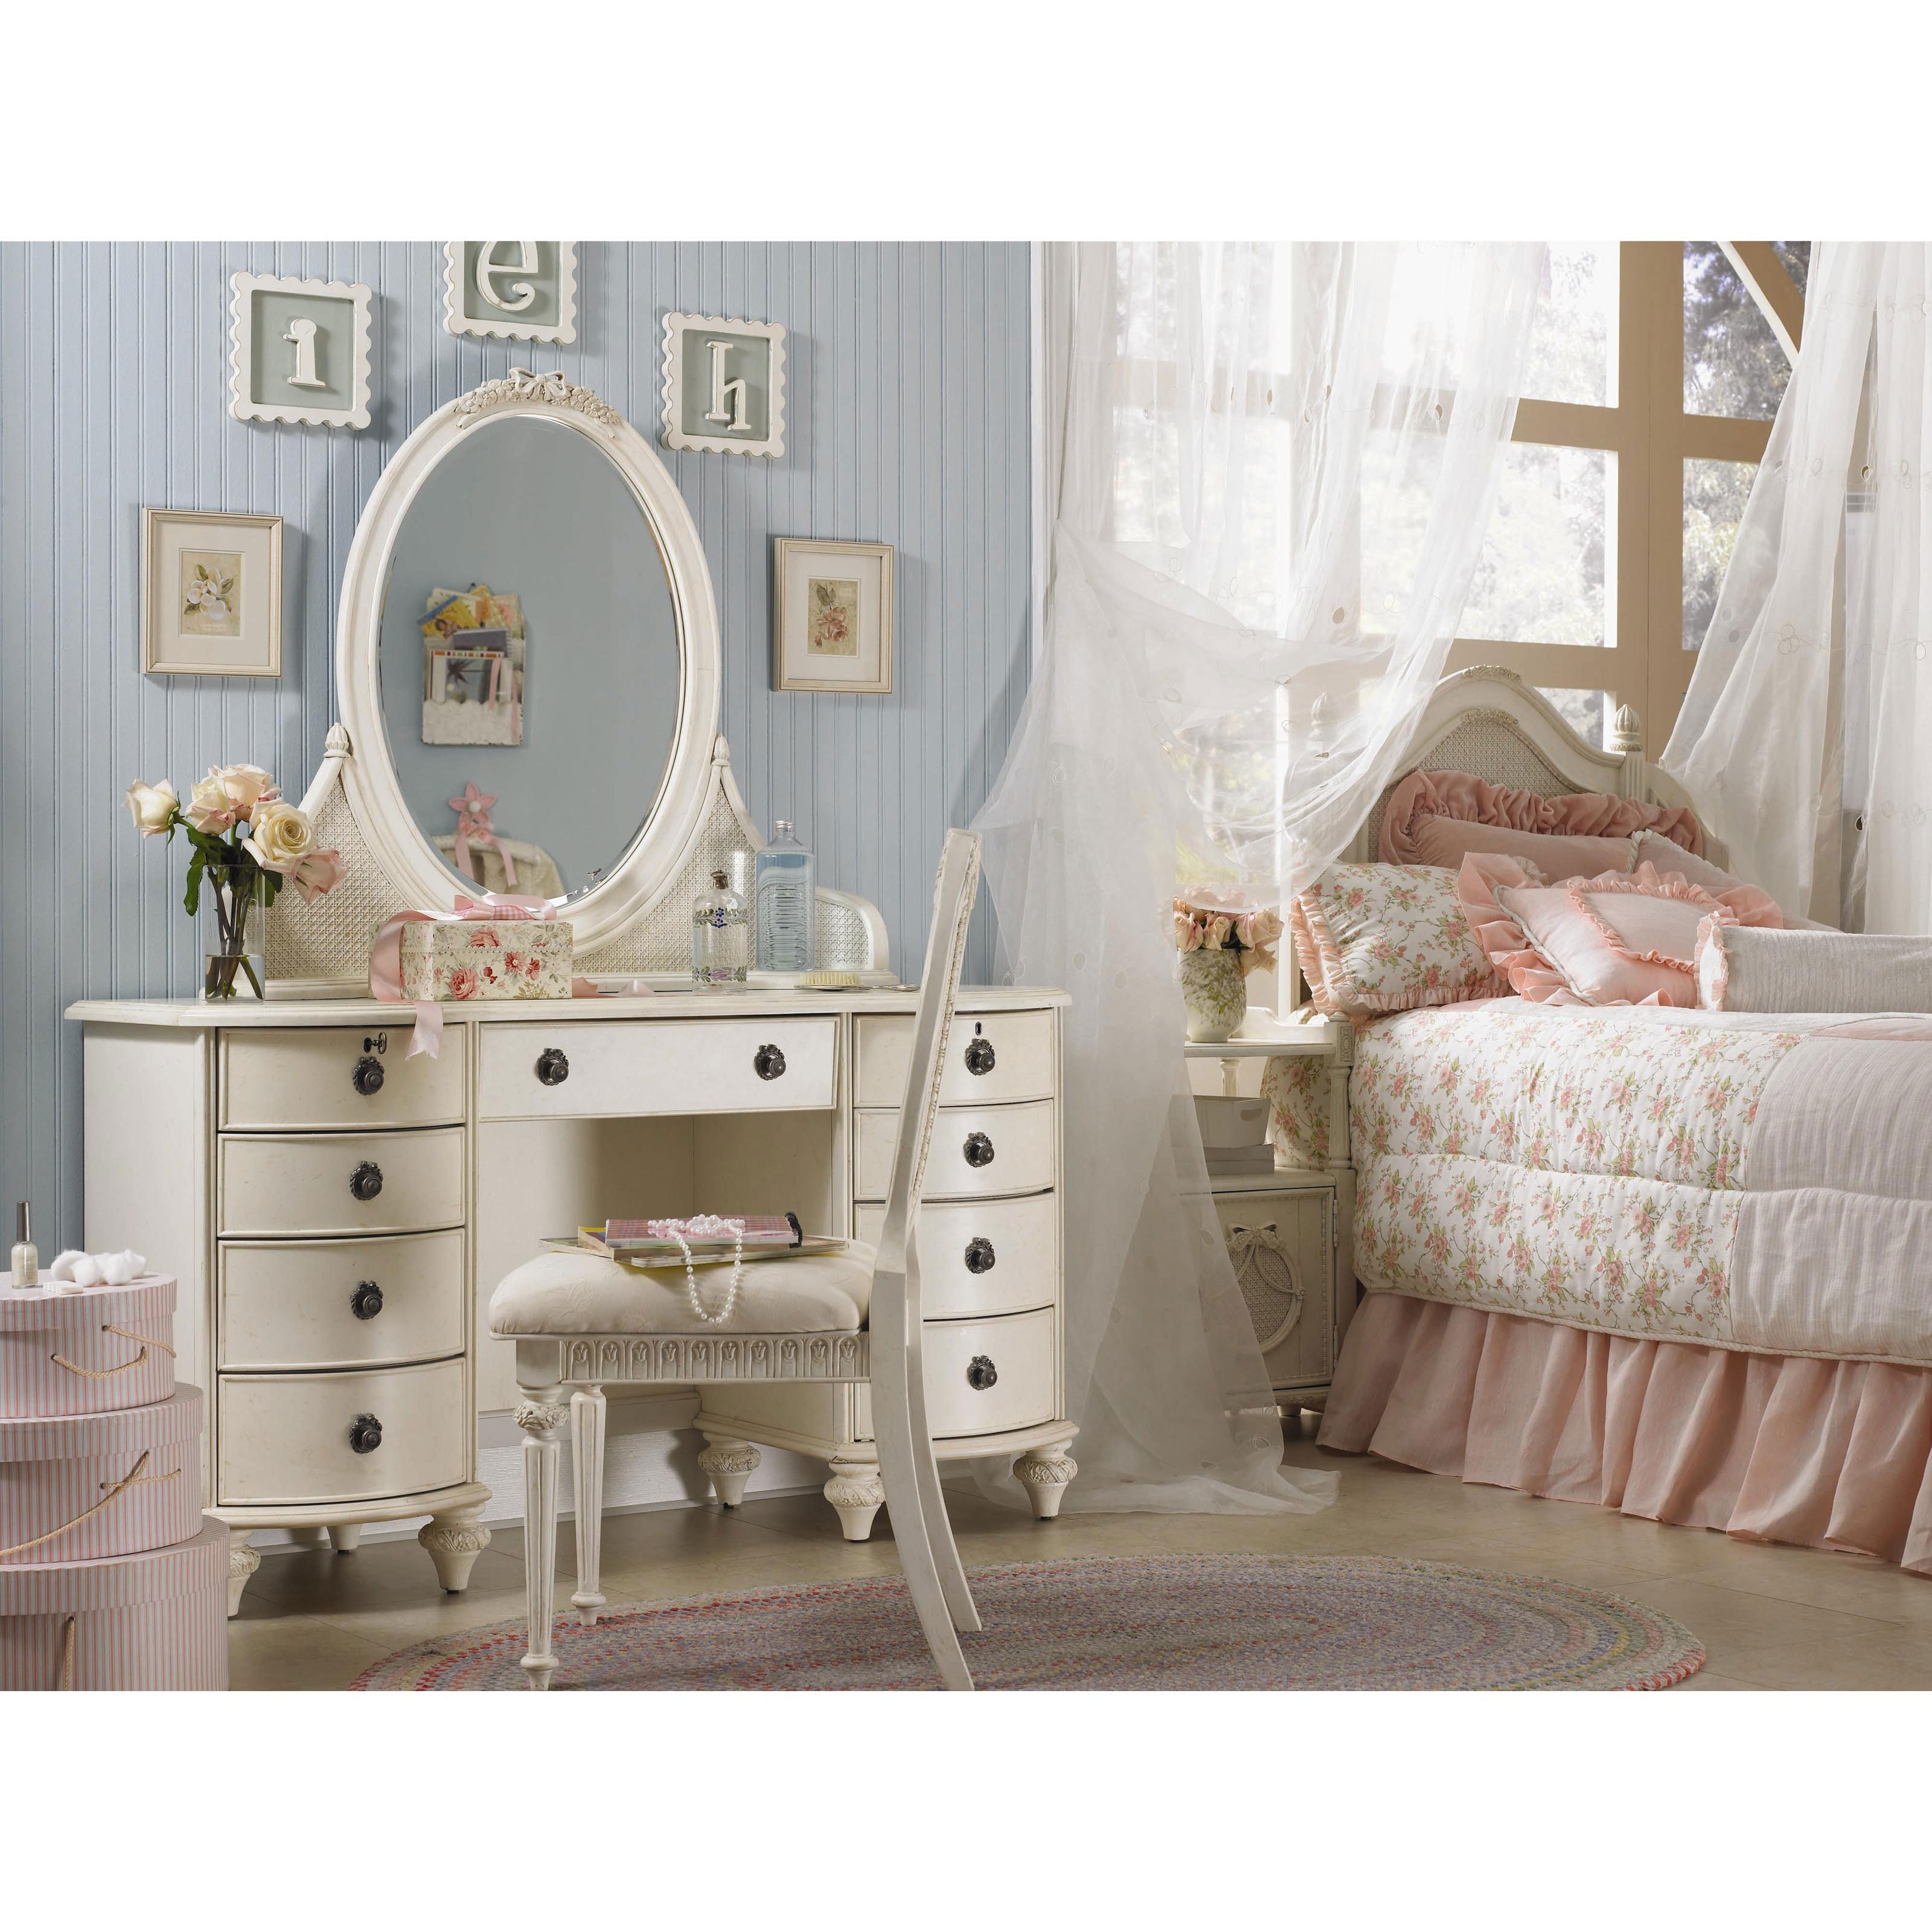 bedroom furniture sets with vanity photo - 3